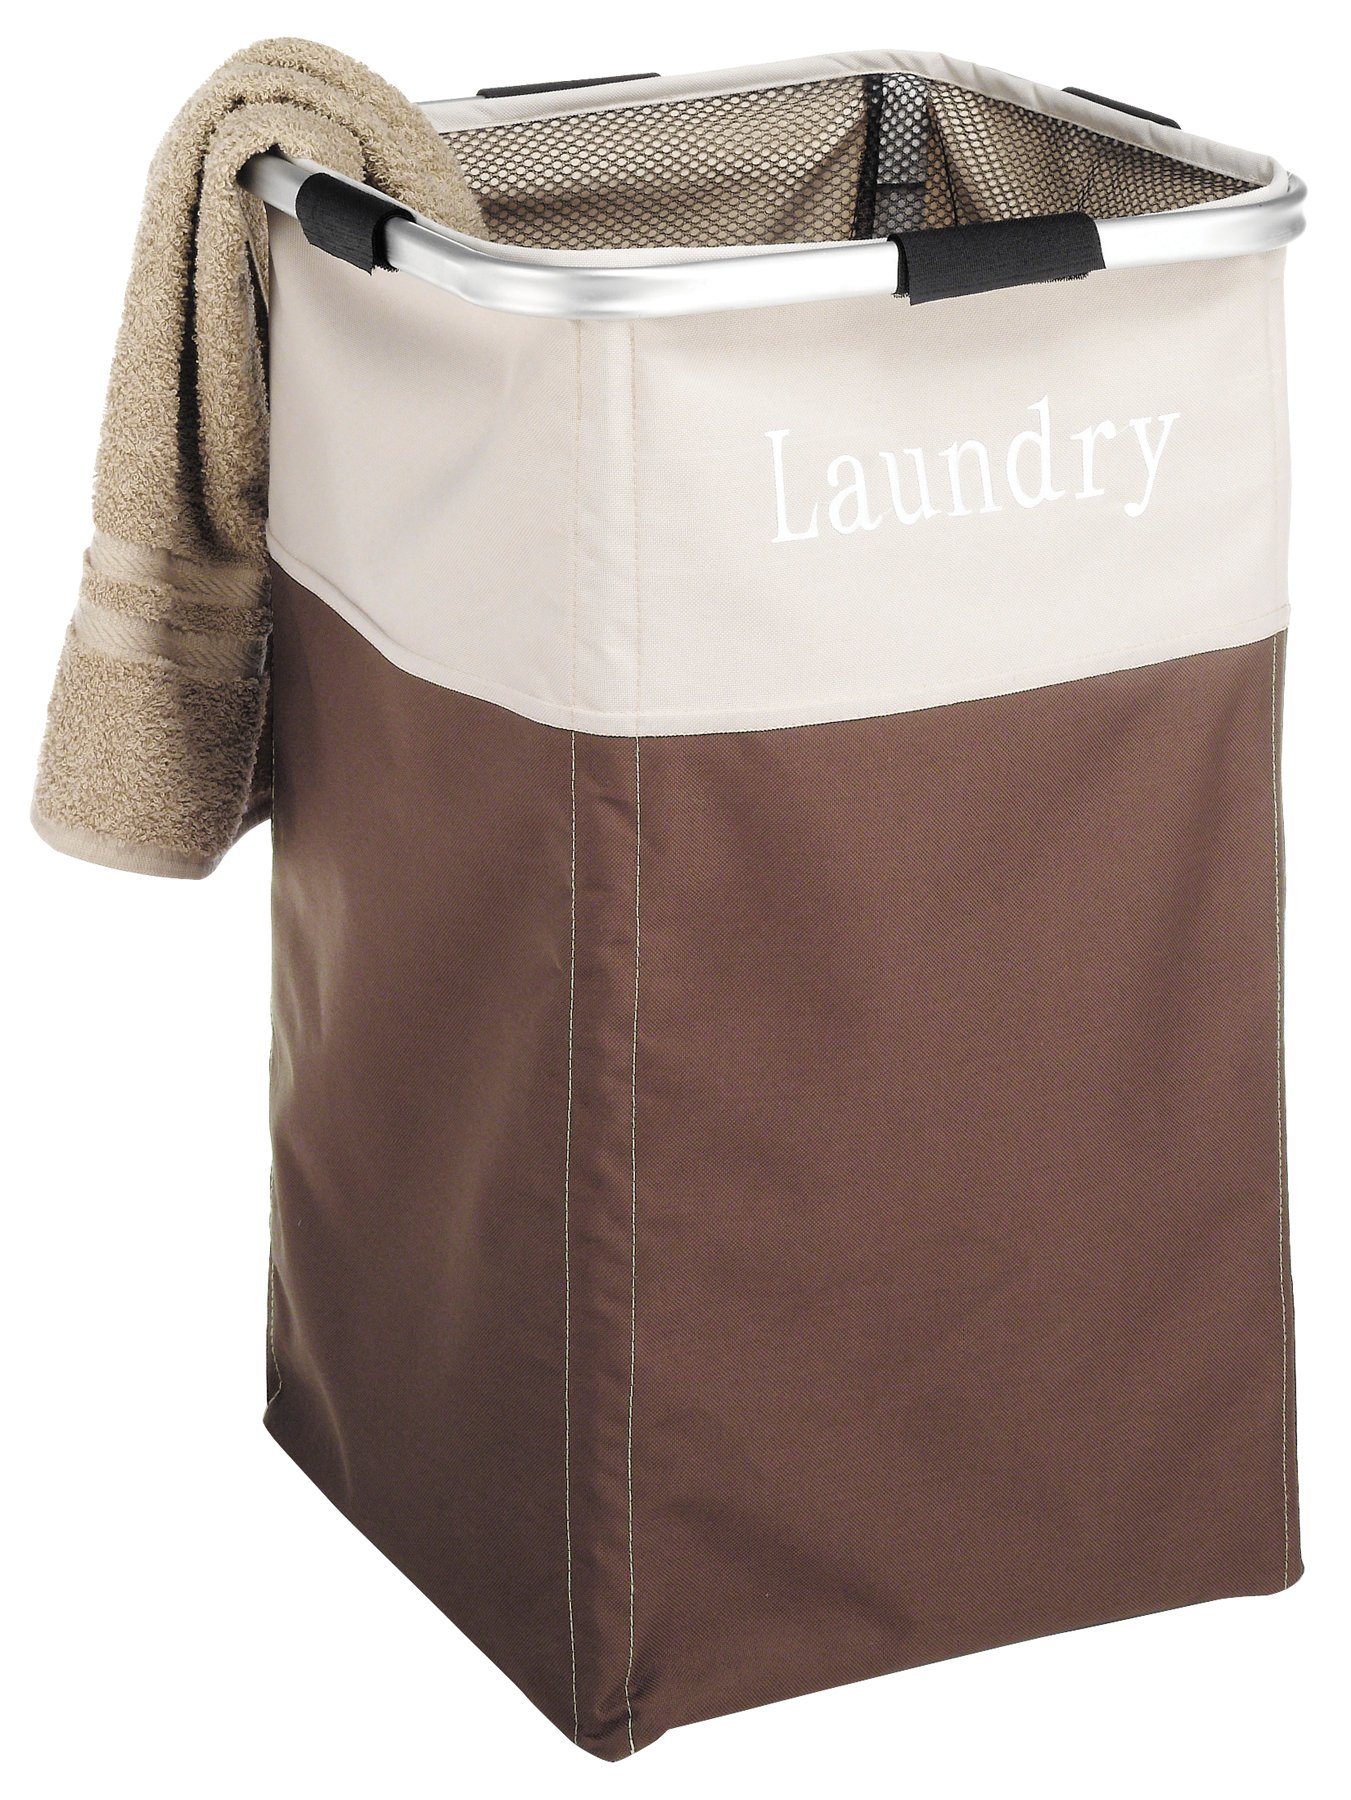 """Whitmor Easycare Square Hamper Java - Easy no tools required assembly Constructed of durable lightweight polyester sorter & easy wipe clean interior. Assembled Dimensions: 13.5"""" x 13.5"""" x 21.25"""" - laundry-room, hampers-baskets, entryway-laundry-room - 81EM2ASFrYL -"""